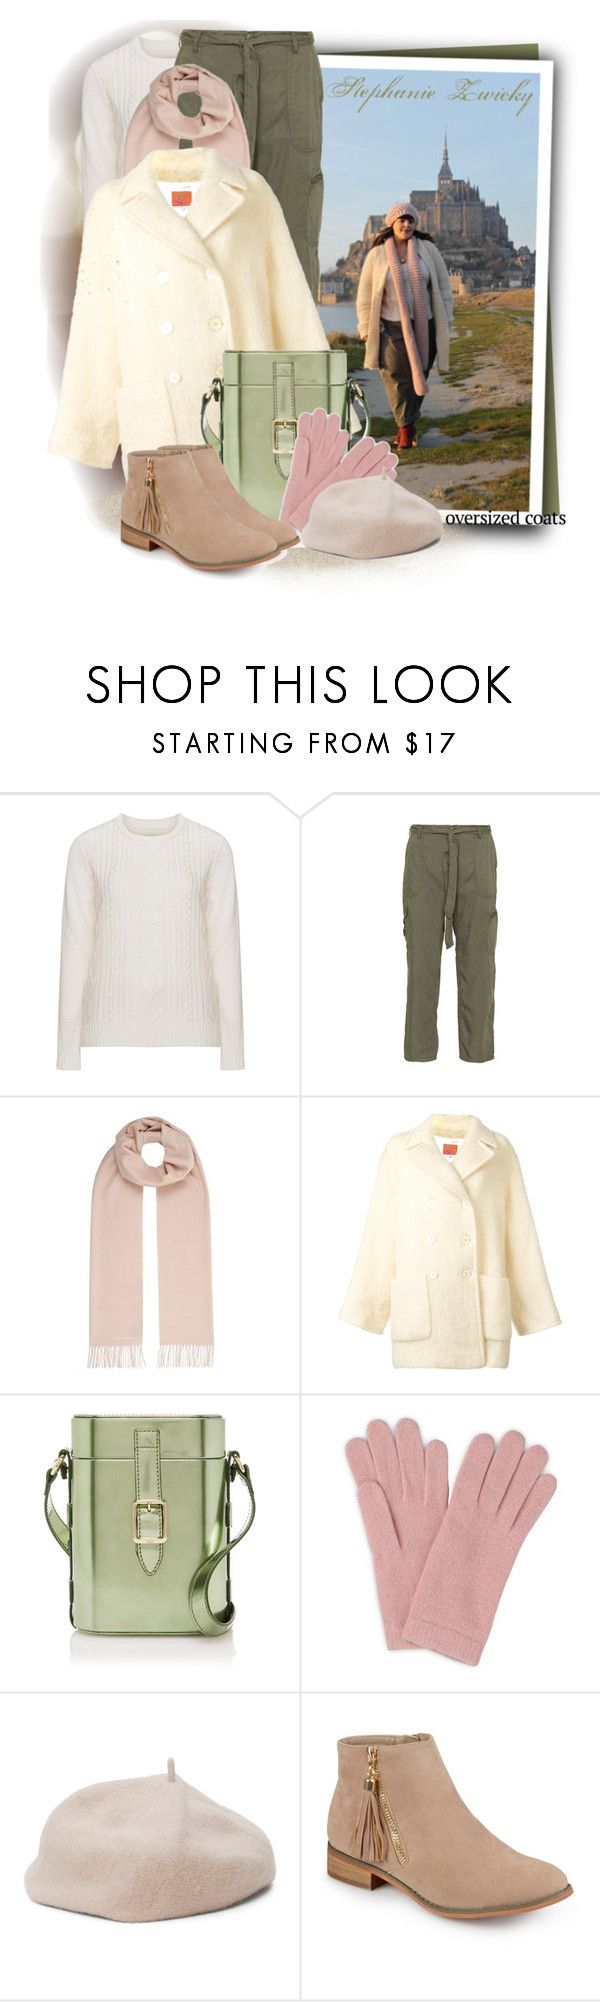 """Kenzo Vintage double breasted coat"" by tasha1973 ❤ liked on Polyvore featuring Zizzi, Weekend Max Mara, Kenzo, L.K.Bennett, Journee Collection and vintage"